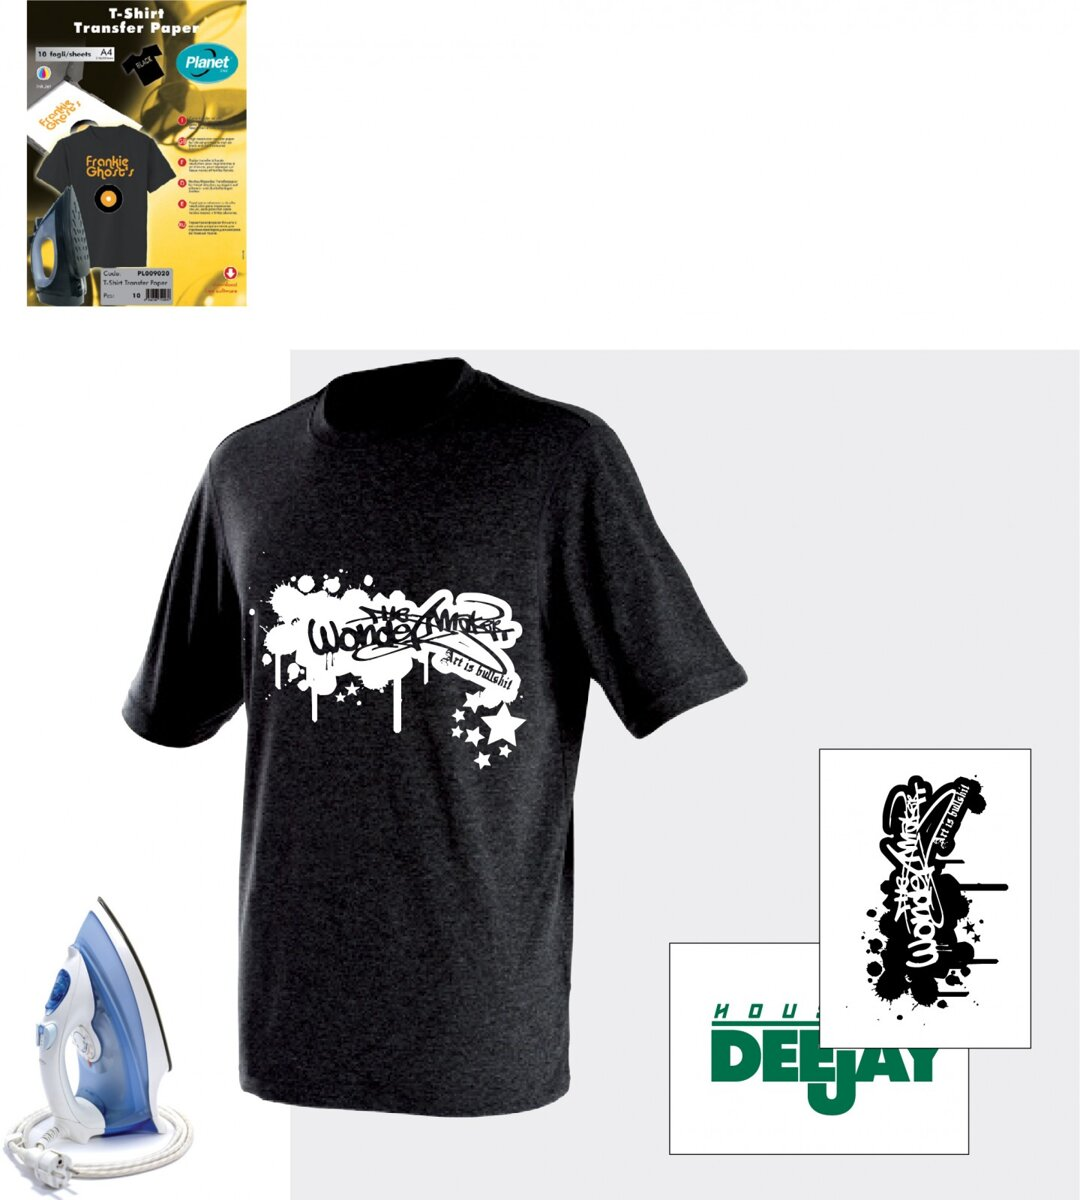 Black t shirt transfer paper - T Shirt Transfer Paper For Black